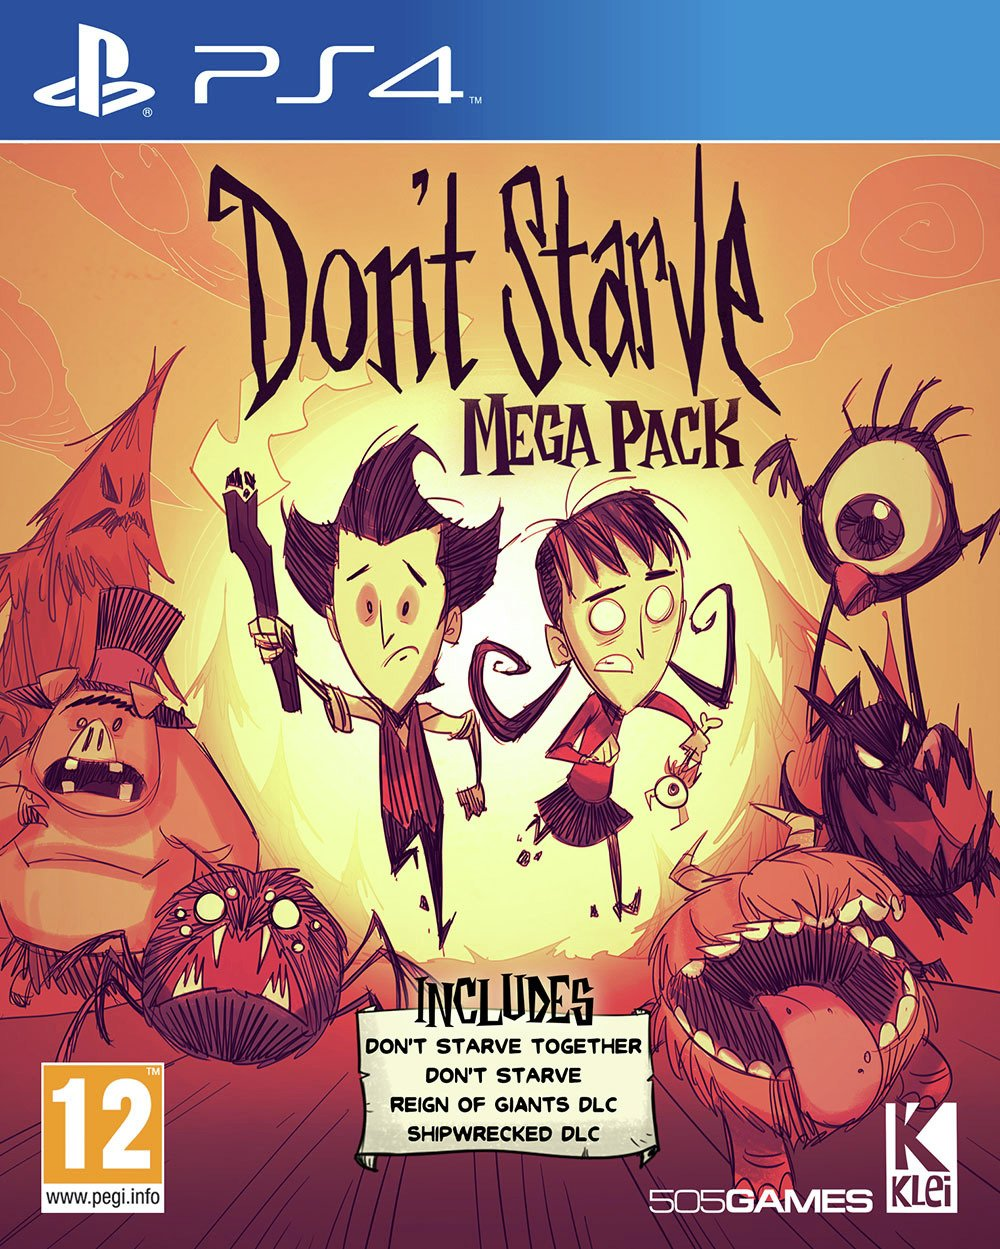 Image of Don't Starve Mega Pack PS4 Pre-Order Game